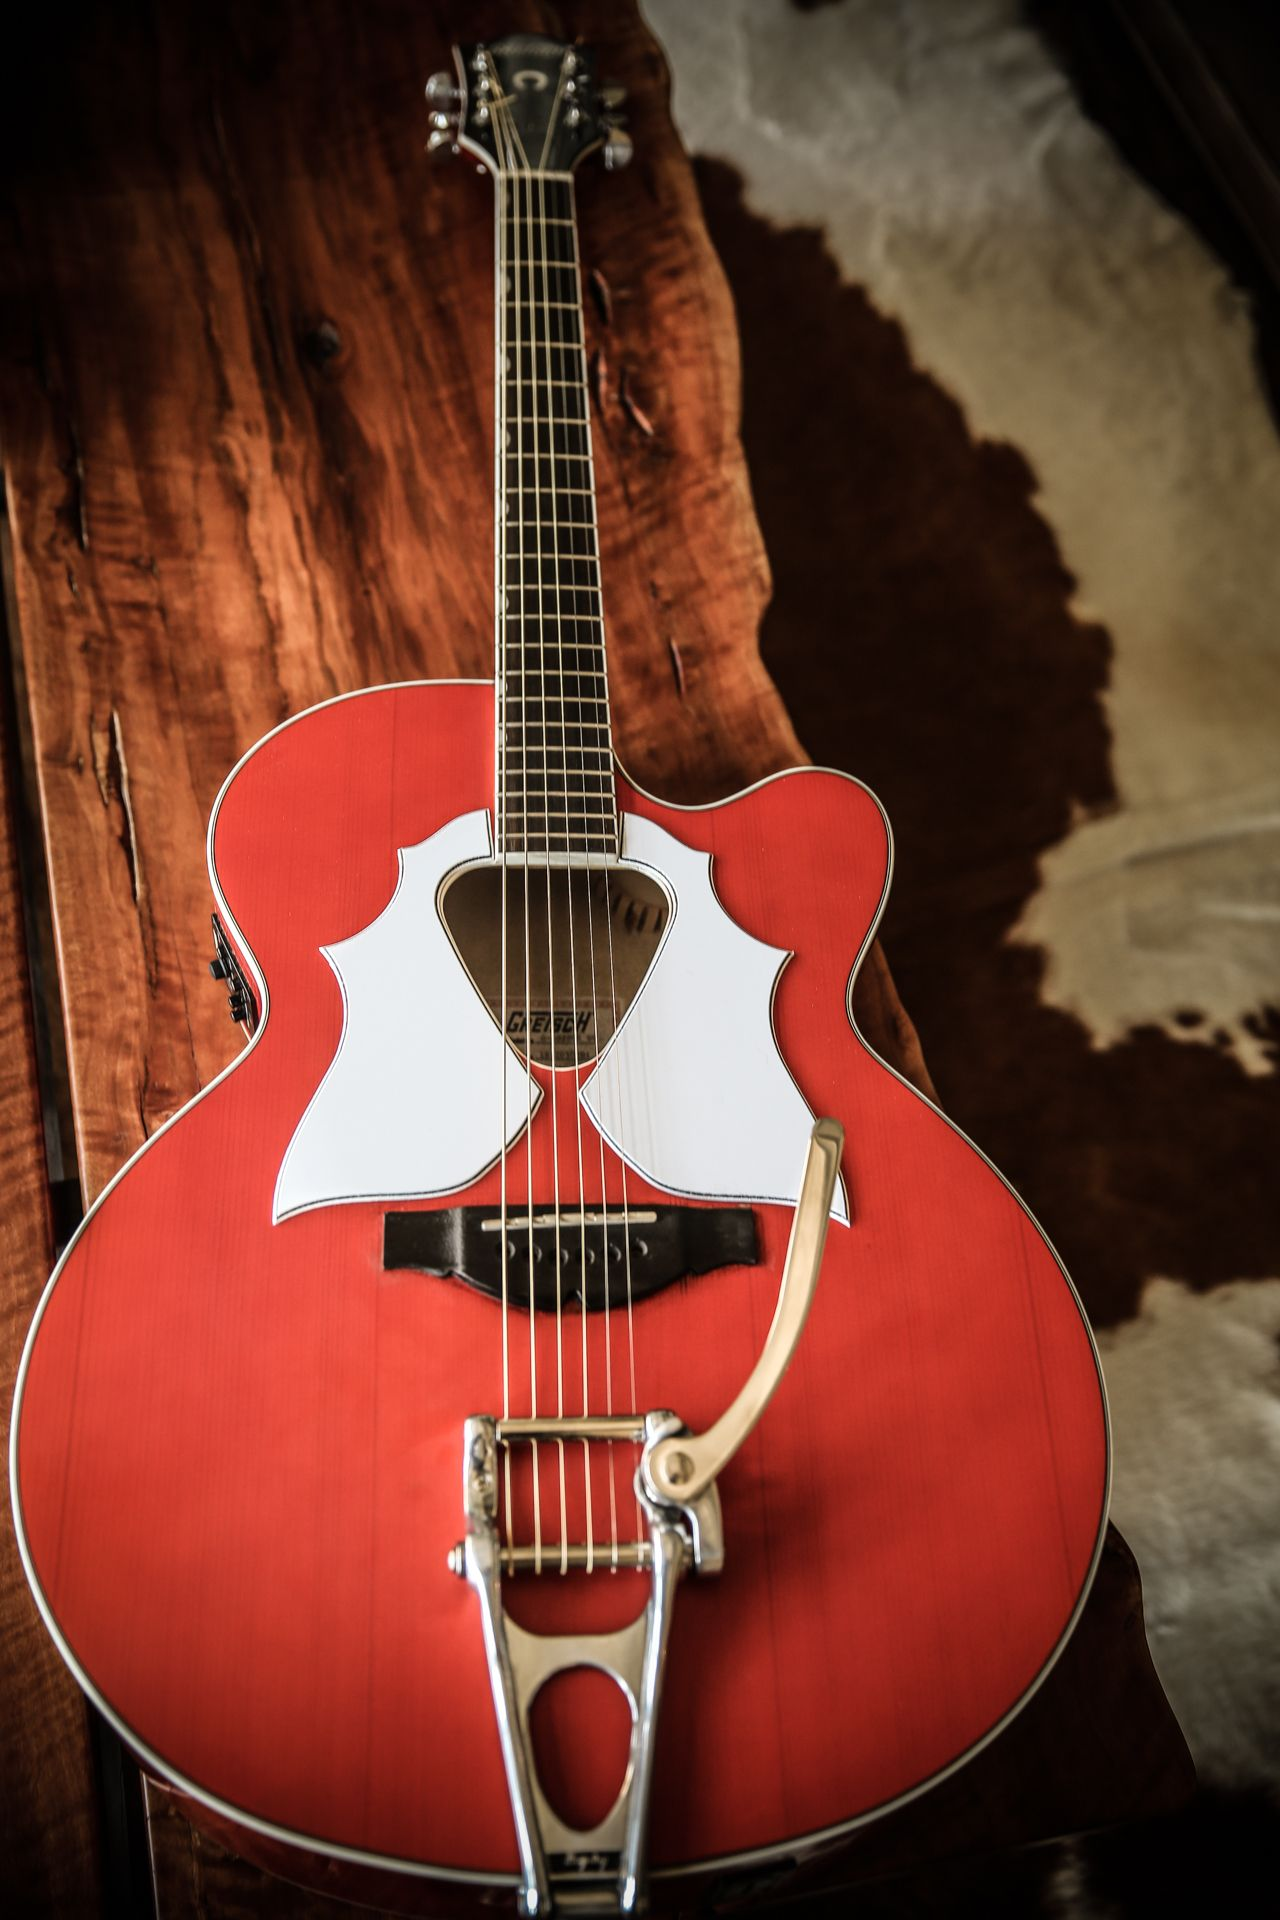 Gretsch Mod I Did On My Jumbo Acoustic This Is A Really Fantastic Sounding Guitar With These Changes Bigsby And Custom Pickguard Gretsch Guitar Learn Guitar